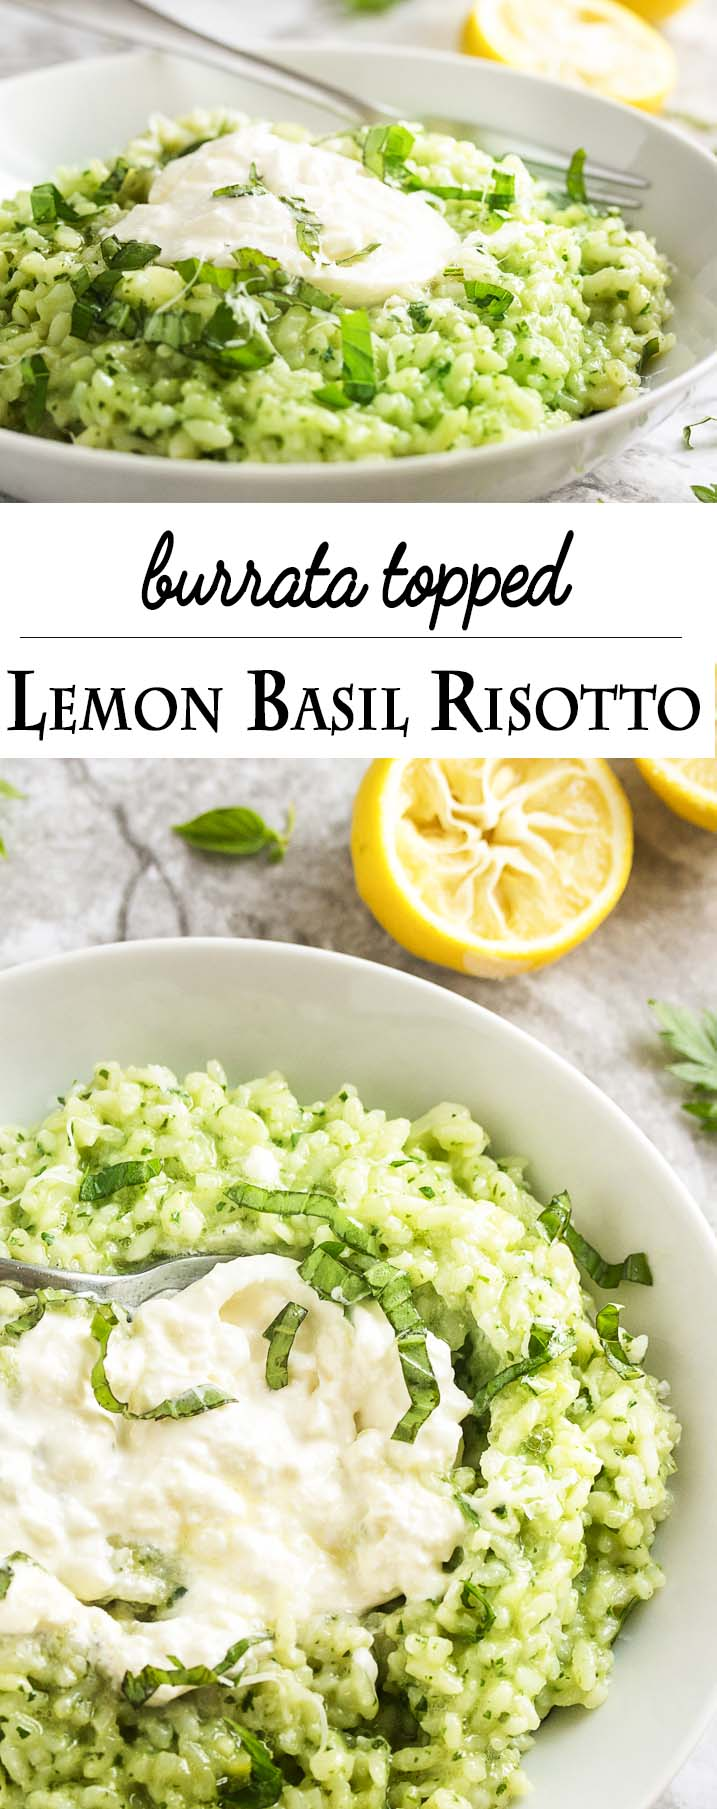 Lemon basil risotto is topped with a luxurious swirl of creamy burrata in this flavorful Italian main course. Vegetarian and gluten-free! | justalittlebitofbacon.com